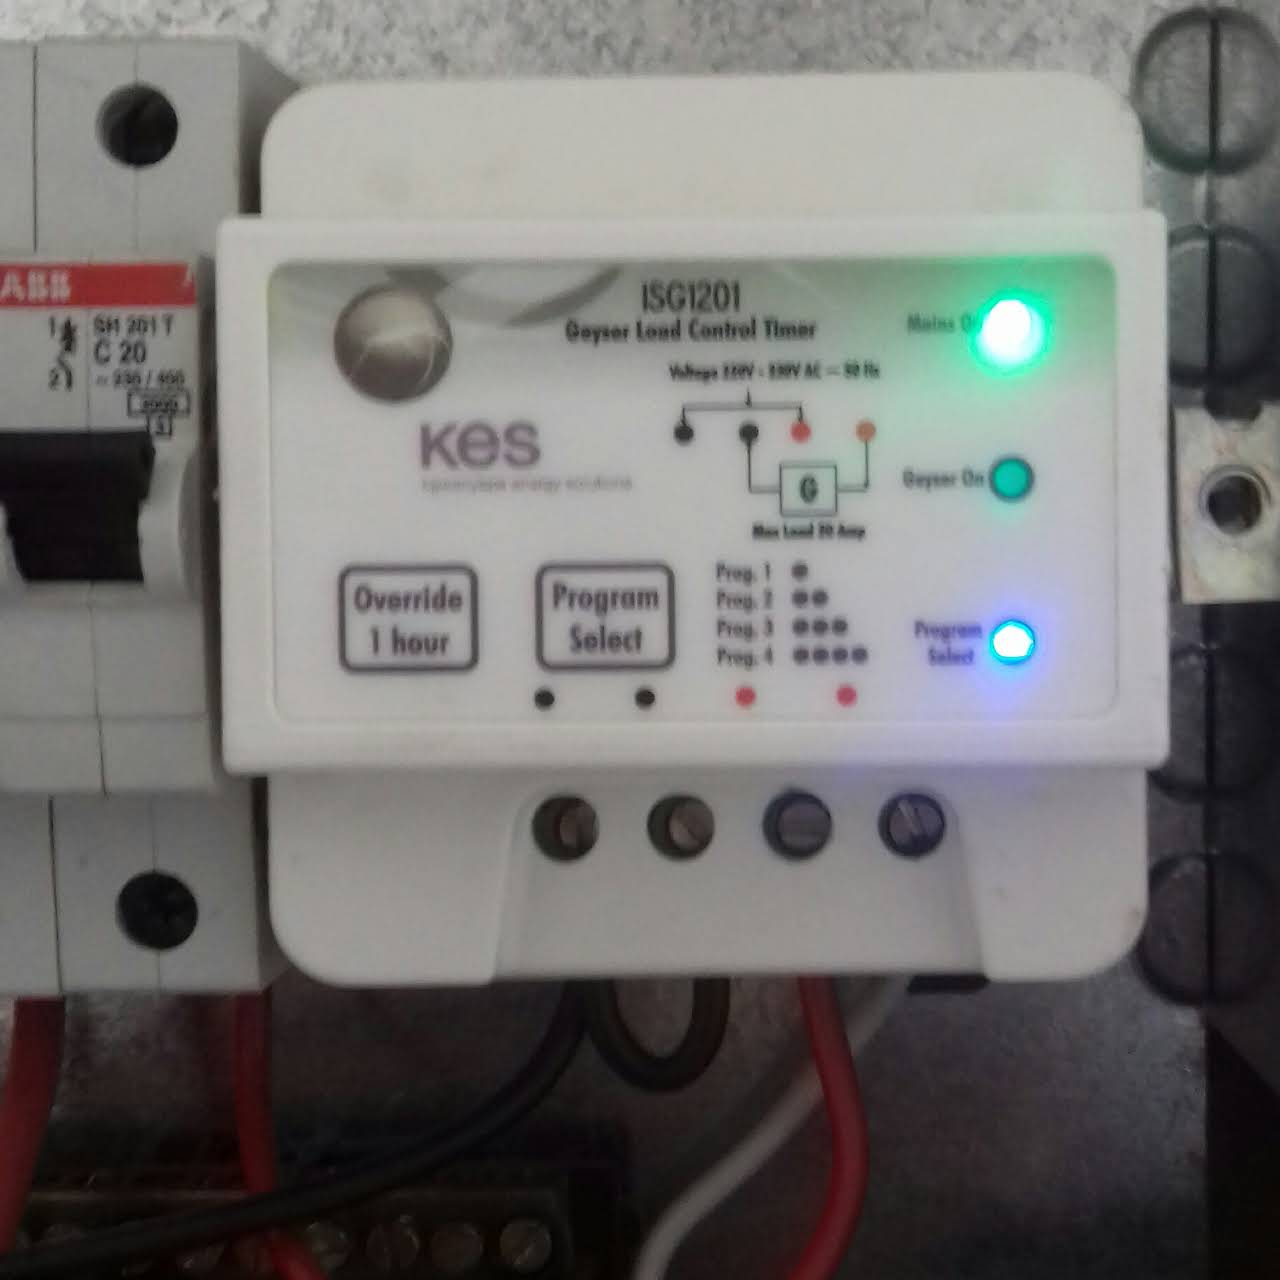 W Reliable Plumbers Electricians Pretoria East Call For A Circuit Breakers Image 3 Posted On 07 Dec 2018